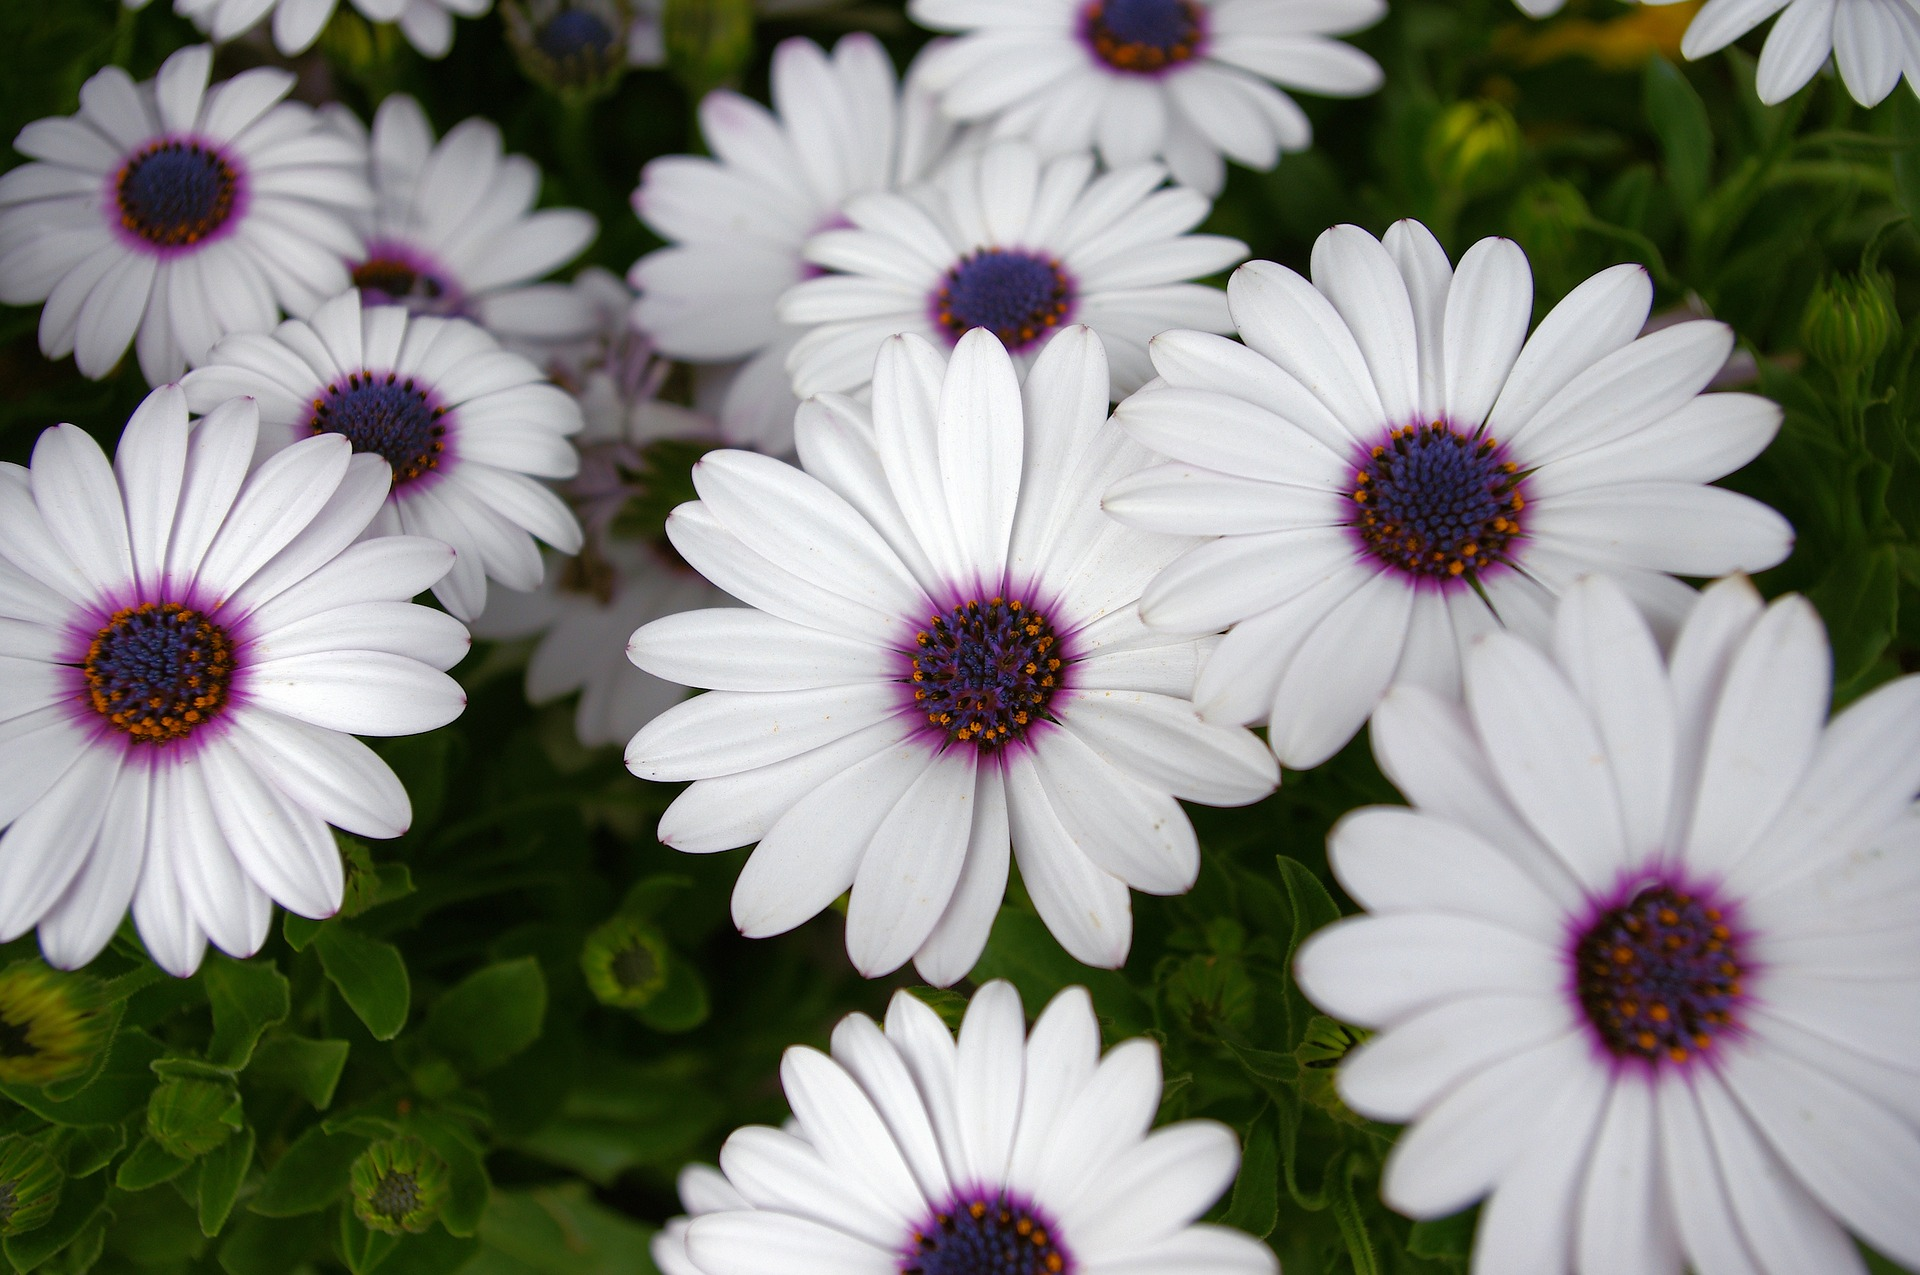 White daisies with purple centers